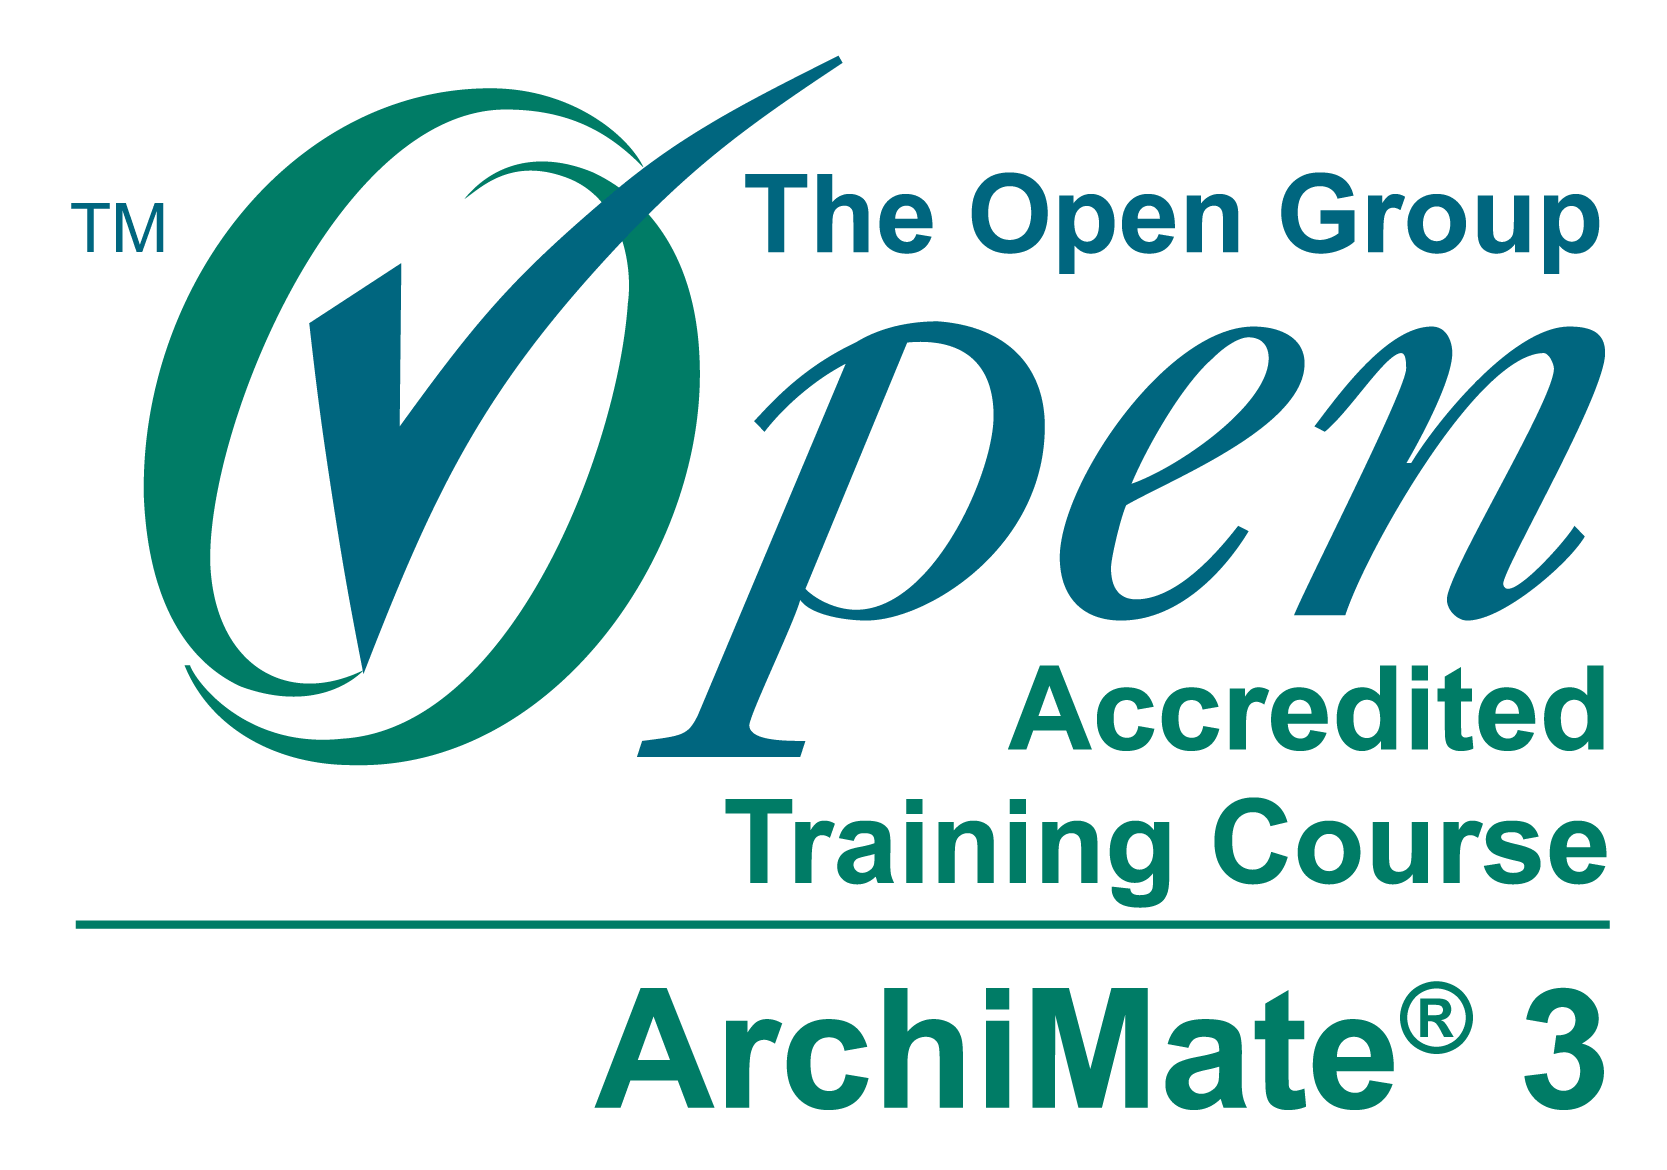 De opleiding ArchiMate® 3.0 is geaccrediteerd door The Open Group®.